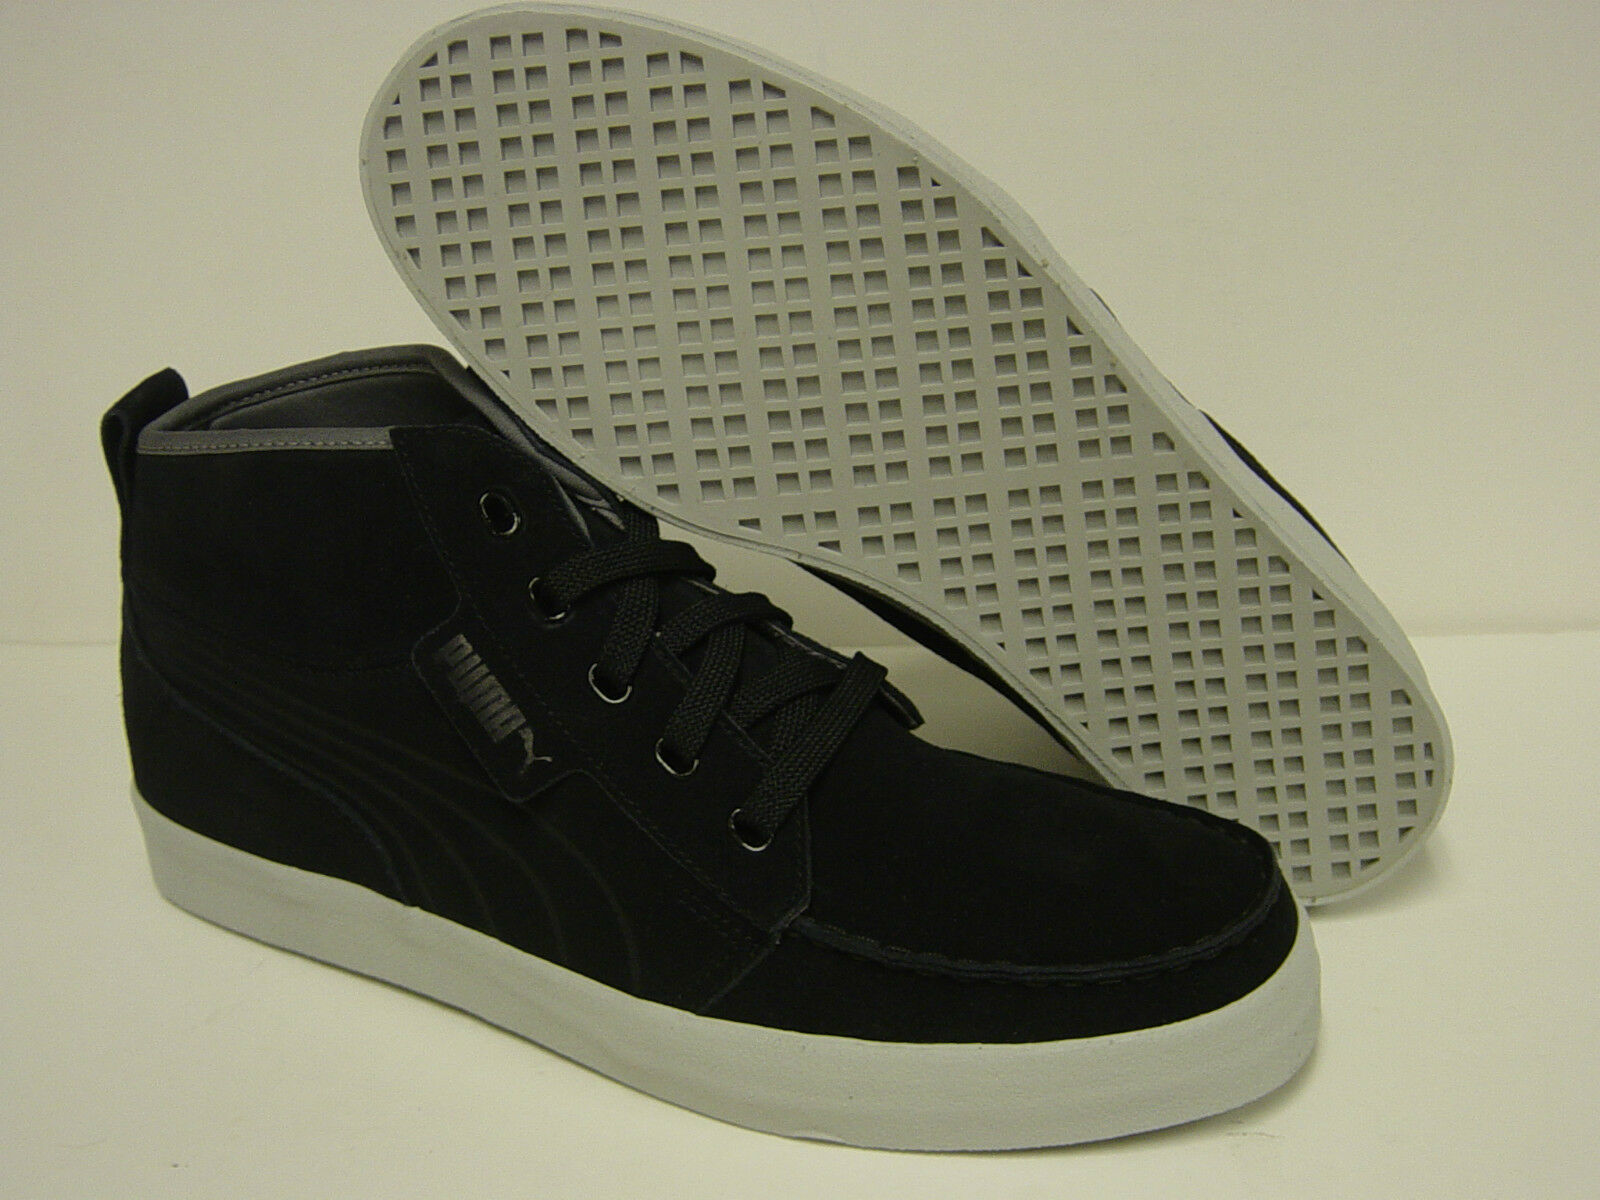 NEW Mens PUMA Hawthorne XE Suede 352802 01 Black Steel Grey Sneakers Shoes